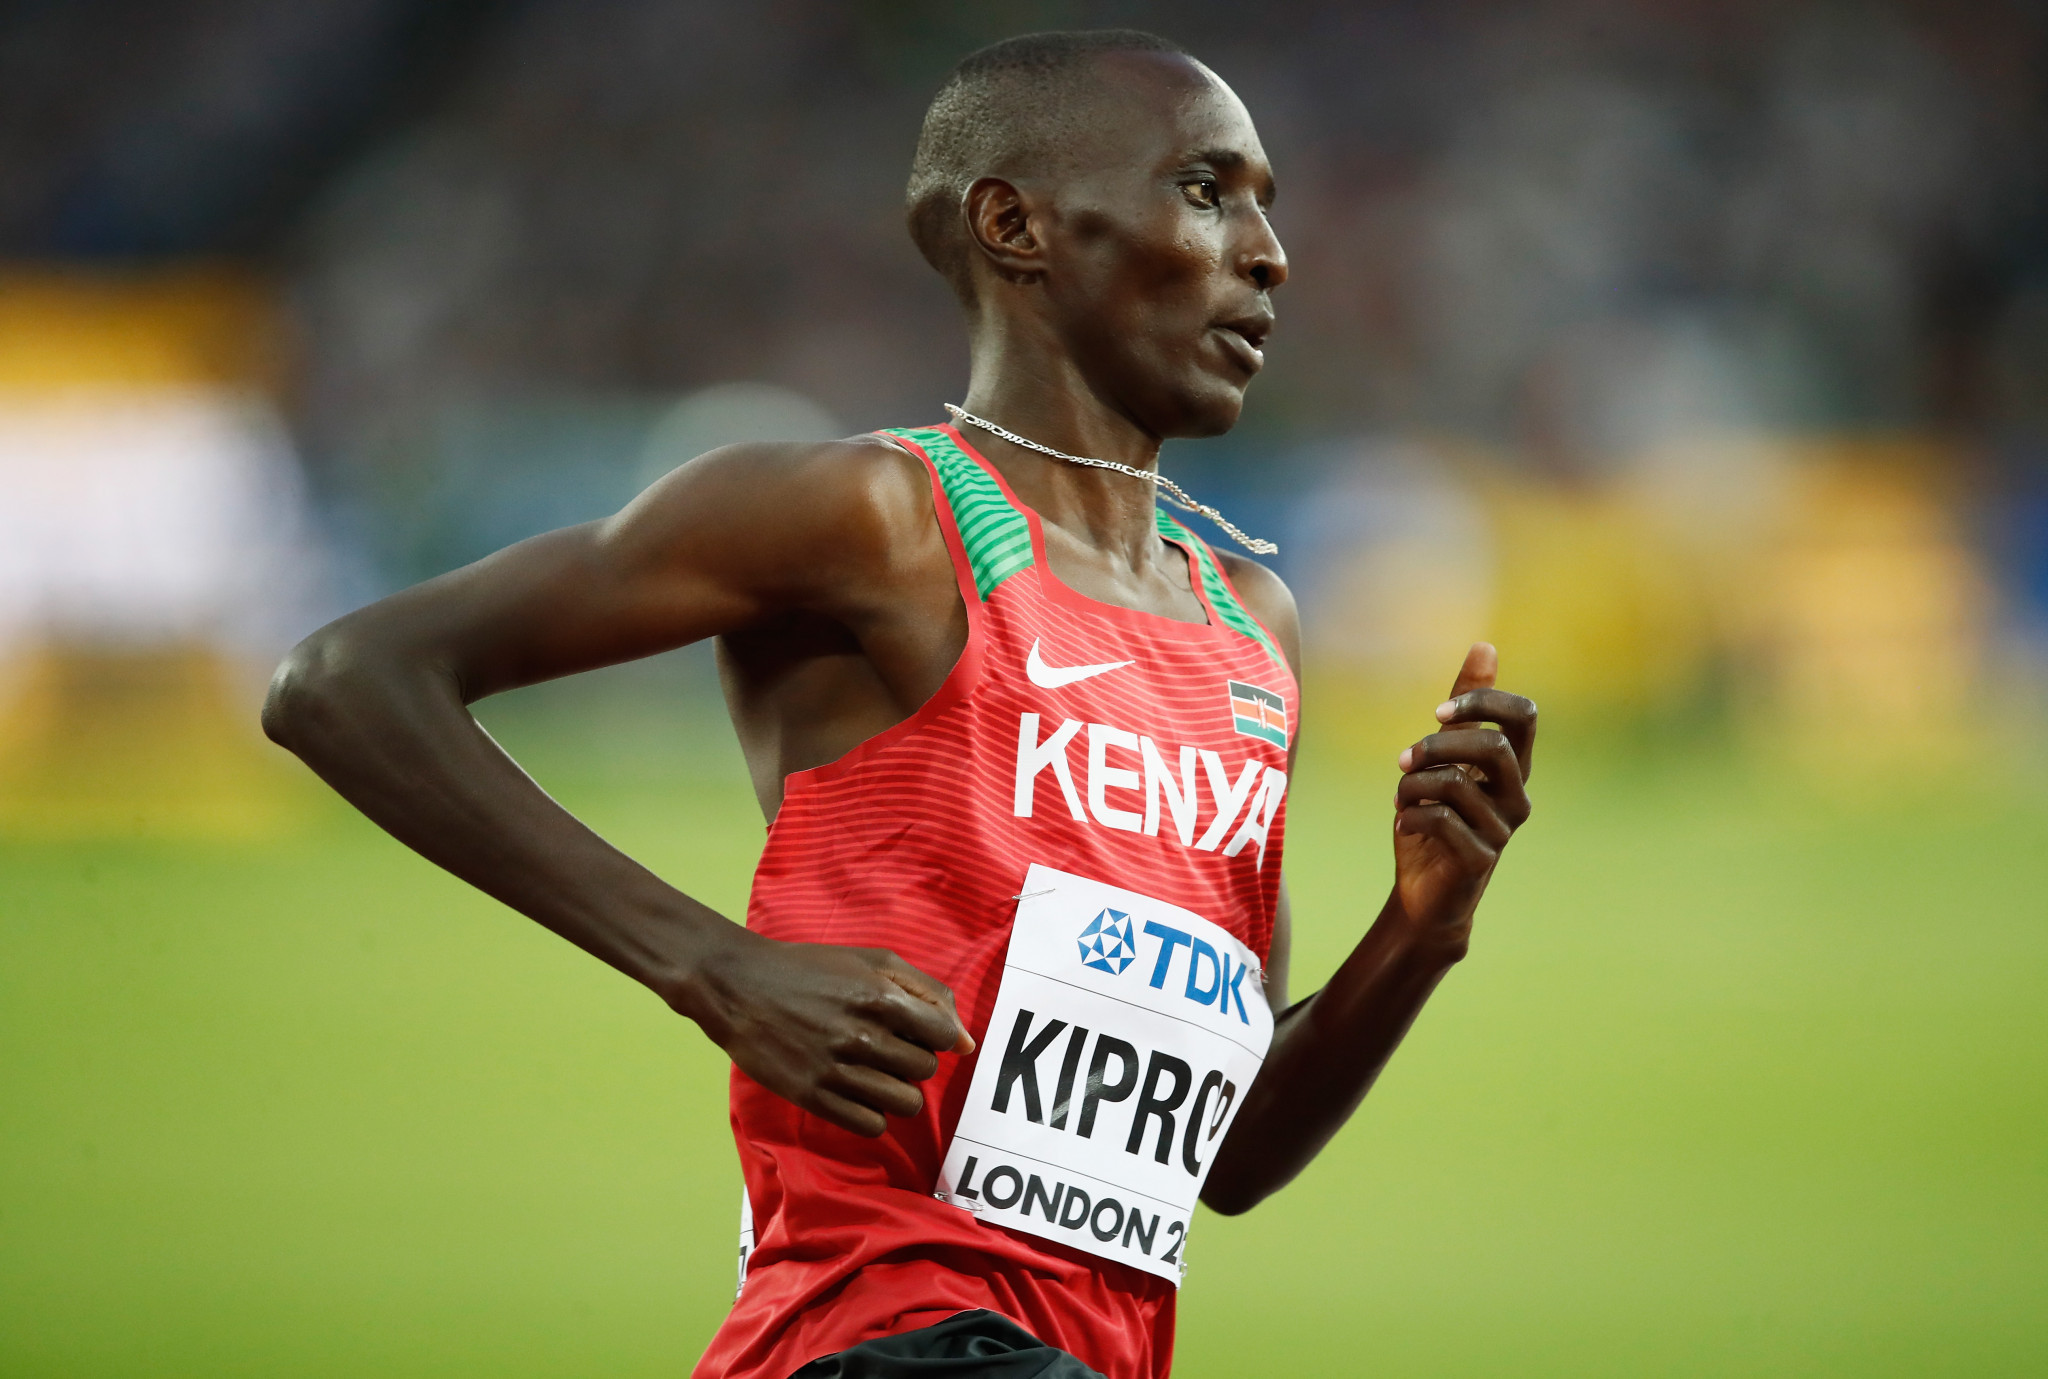 Three-time world champion Asbel Kiprop says he has given up trying to prove his positive doping sample was contaminated ©Getty Images